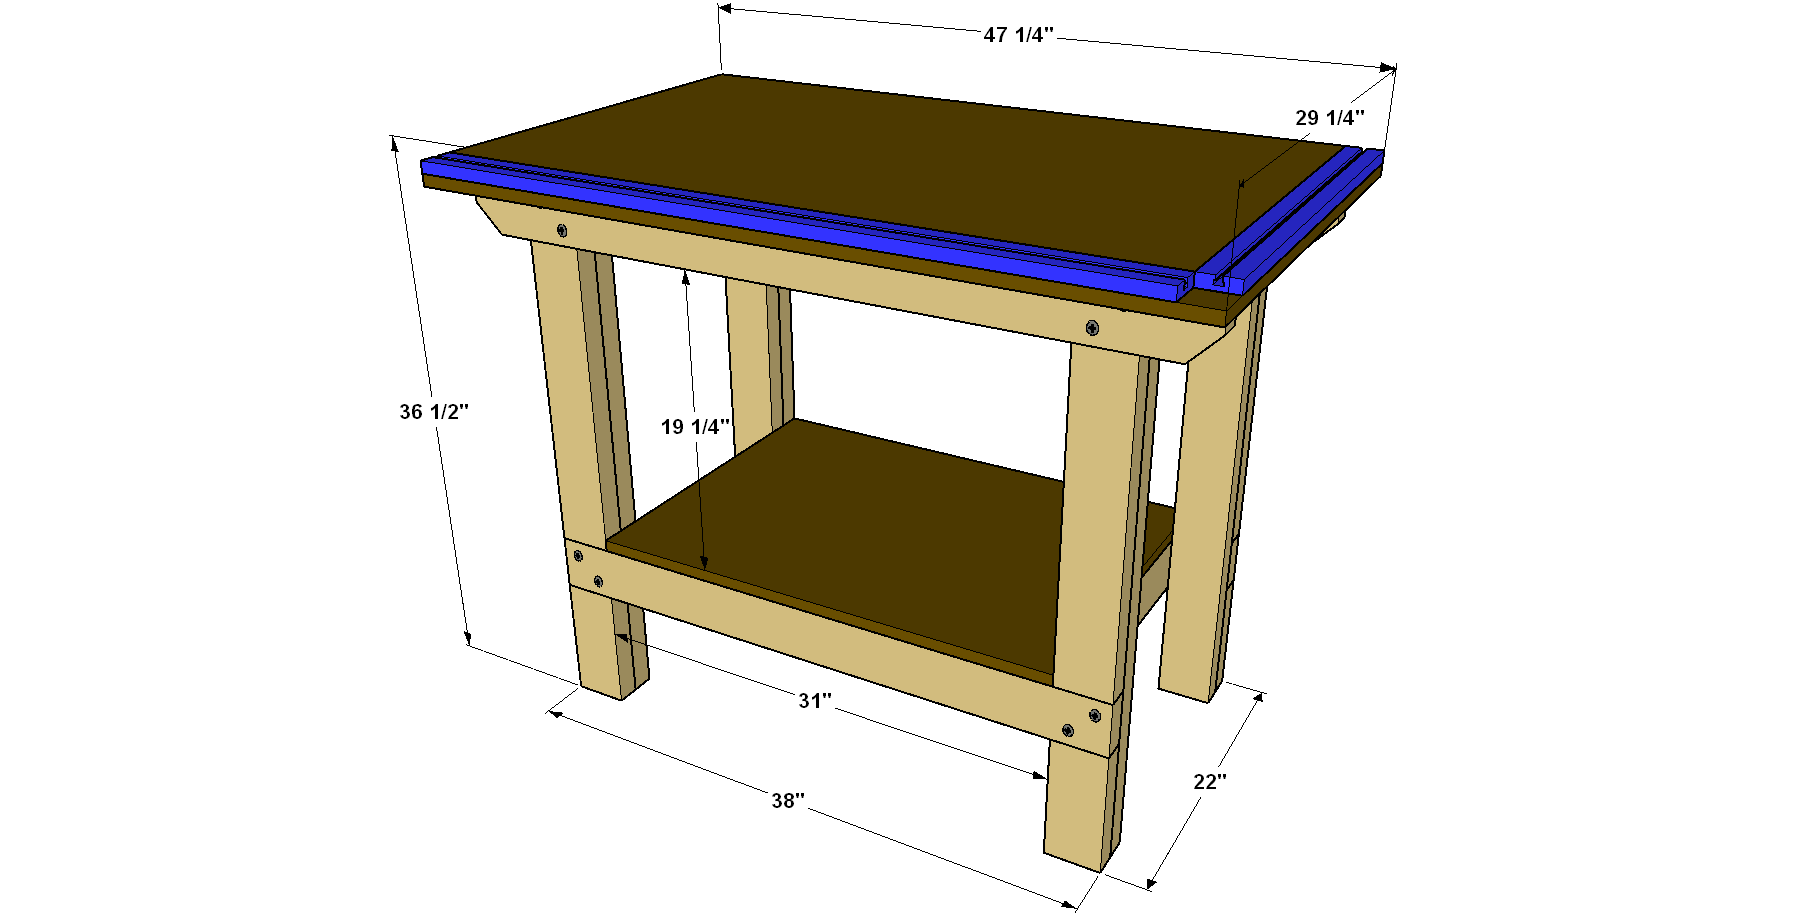 diy-workbench-overall-with-dimensions